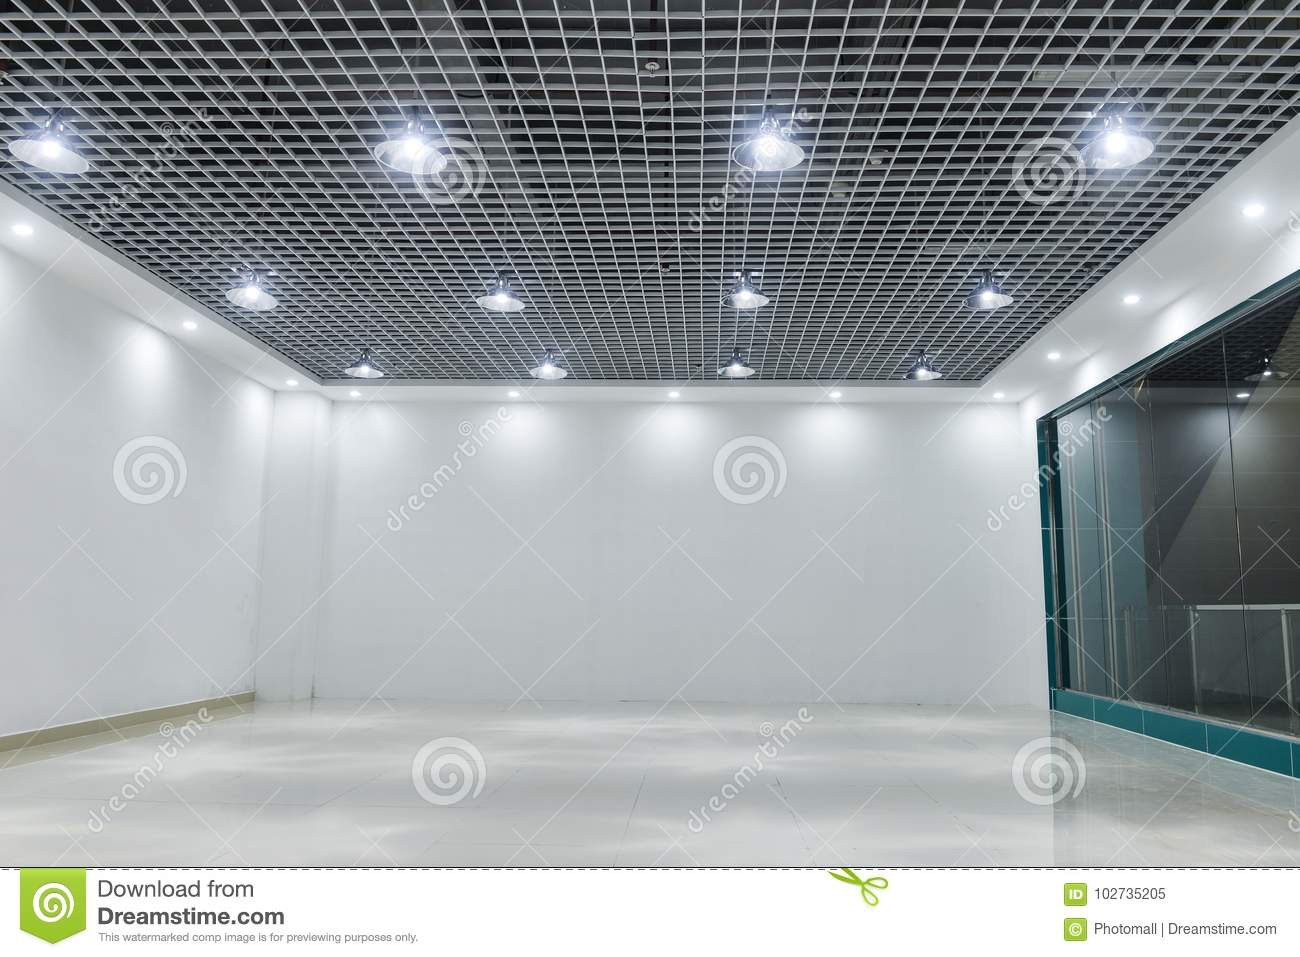 Led ceiling lights on modern commercial building ceiling